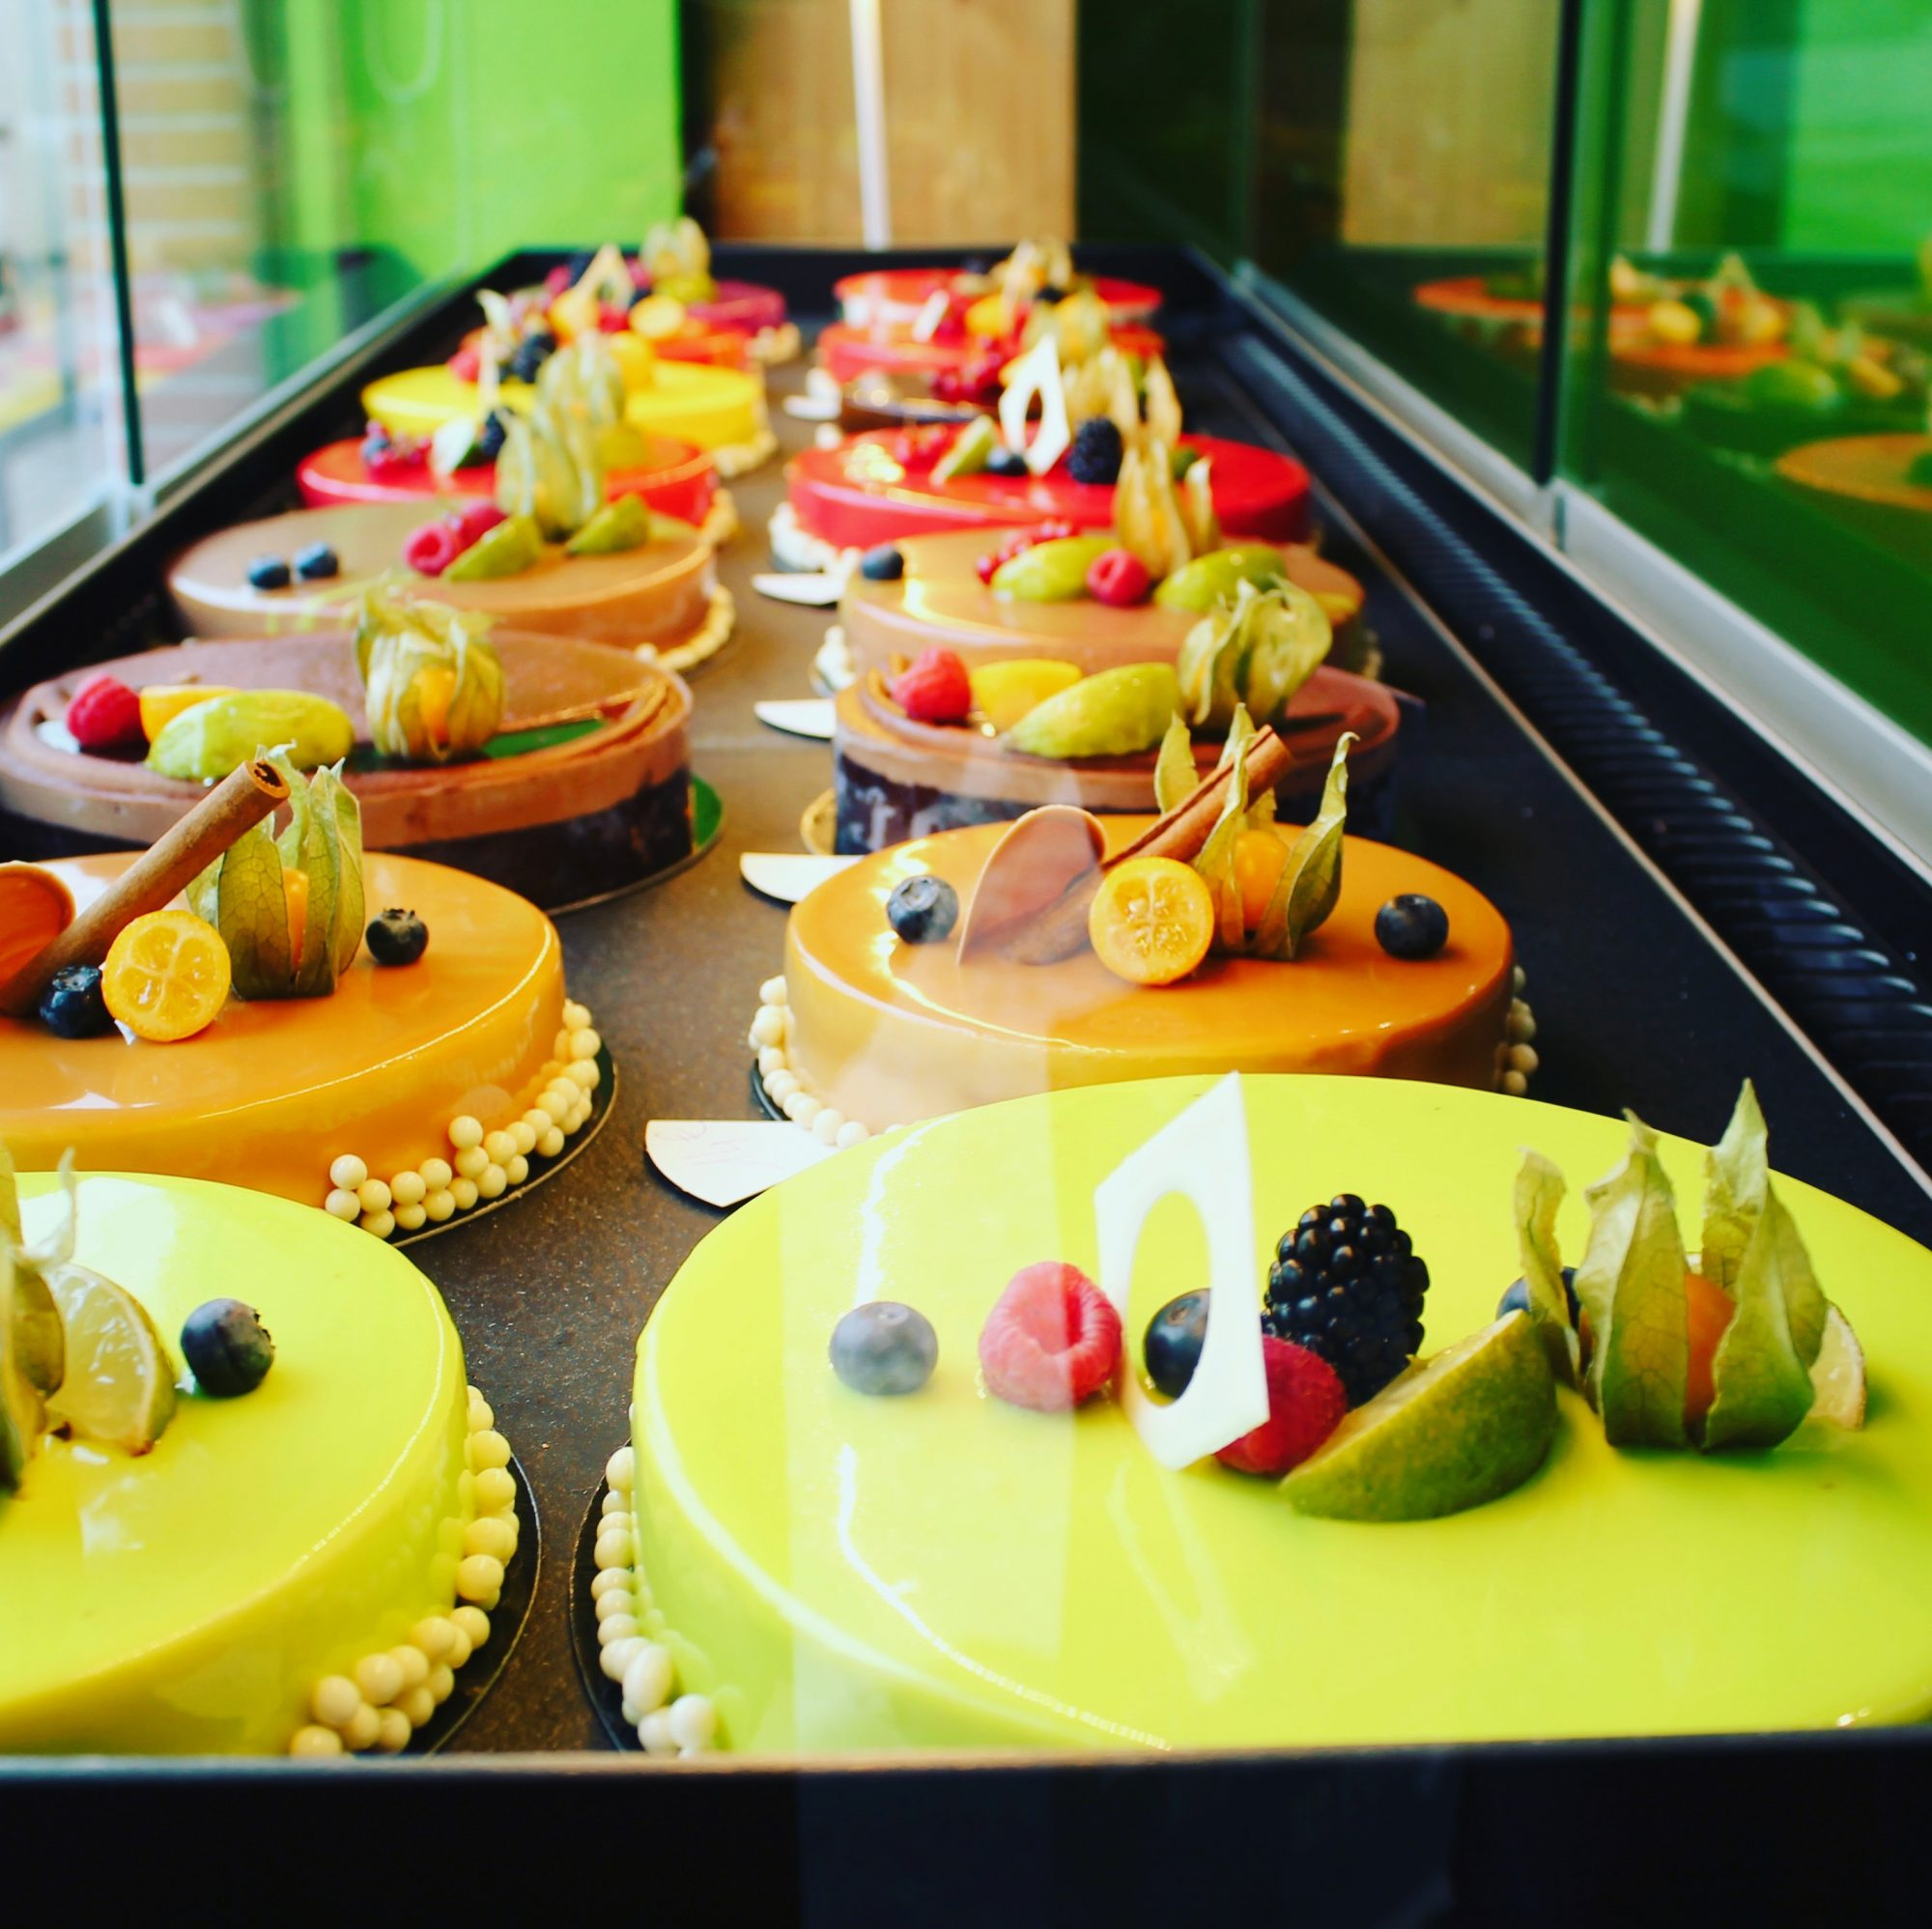 PATISSERIE CHOCOLATERIE MAISON DURAND